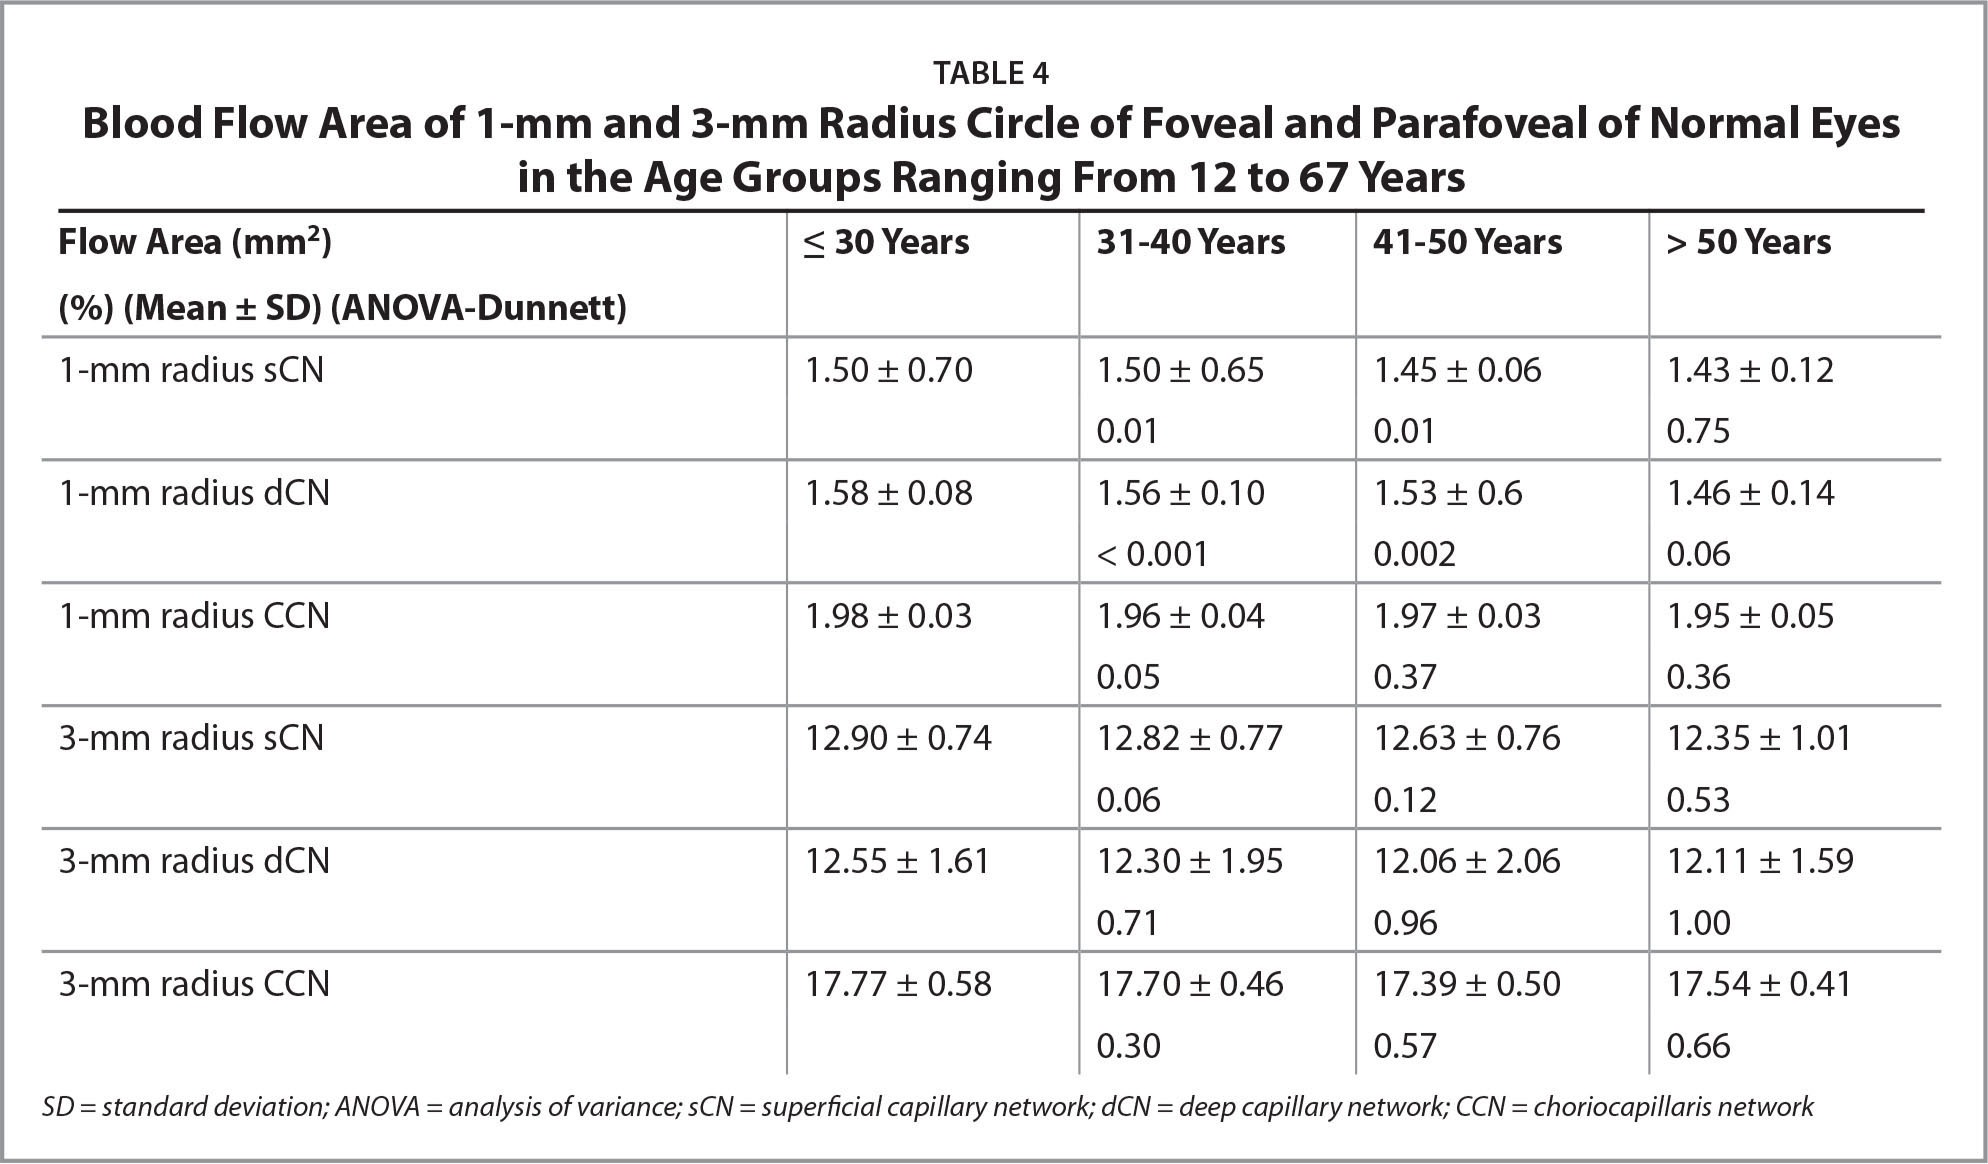 Blood Flow Area of 1-mm and 3-mm Radius Circle of Foveal and Parafoveal of Normal Eyes in the Age Groups Ranging From 12 to 67 Years